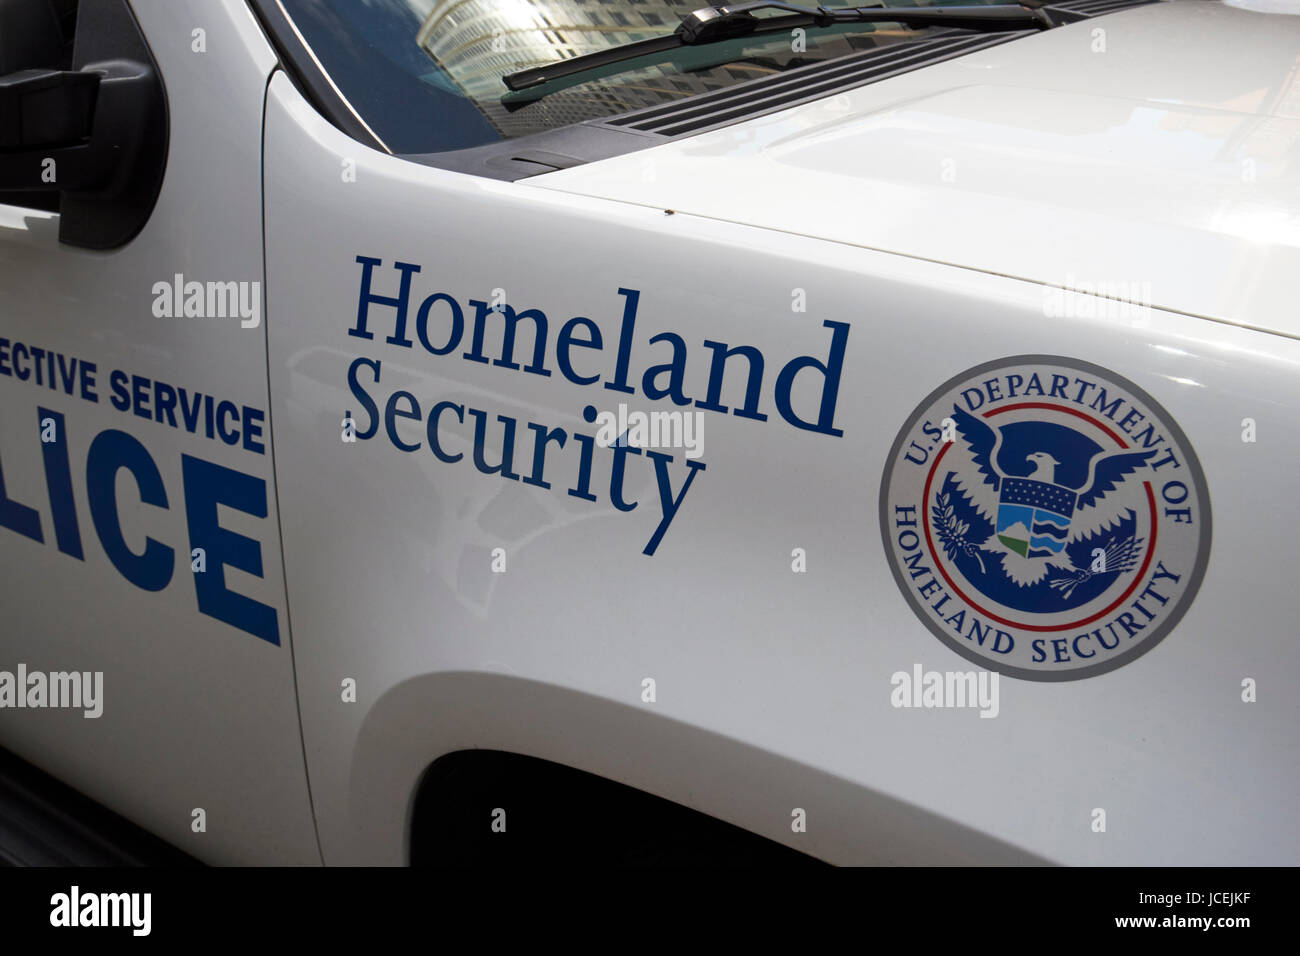 homeland security logo on vehicle New York City USA Stock Photo